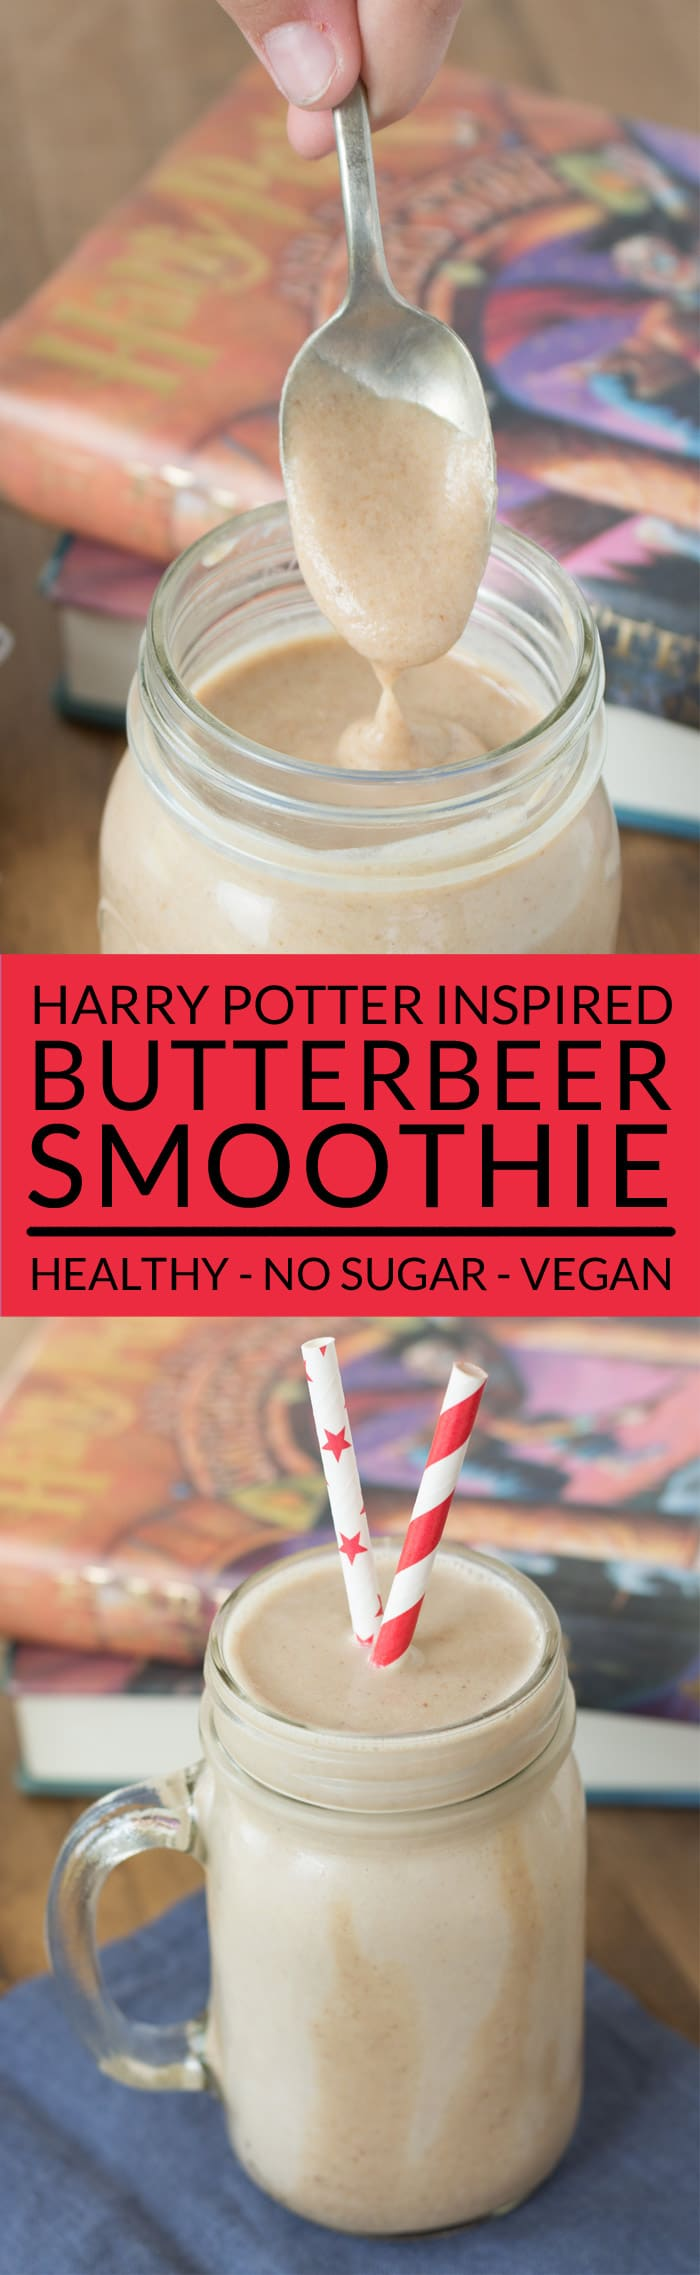 Make a homemade Harry Potter Butterbeer Smoothie and feel the magic! This easy smoothie recipe tastes like the Butterbeer sold at Hogsmeade in the Wizarding World of Harry Potter but it contains no sugar and it's vegan. Perfect for healthy kids! Only six ingredients! Healthy Smoothies to Try.